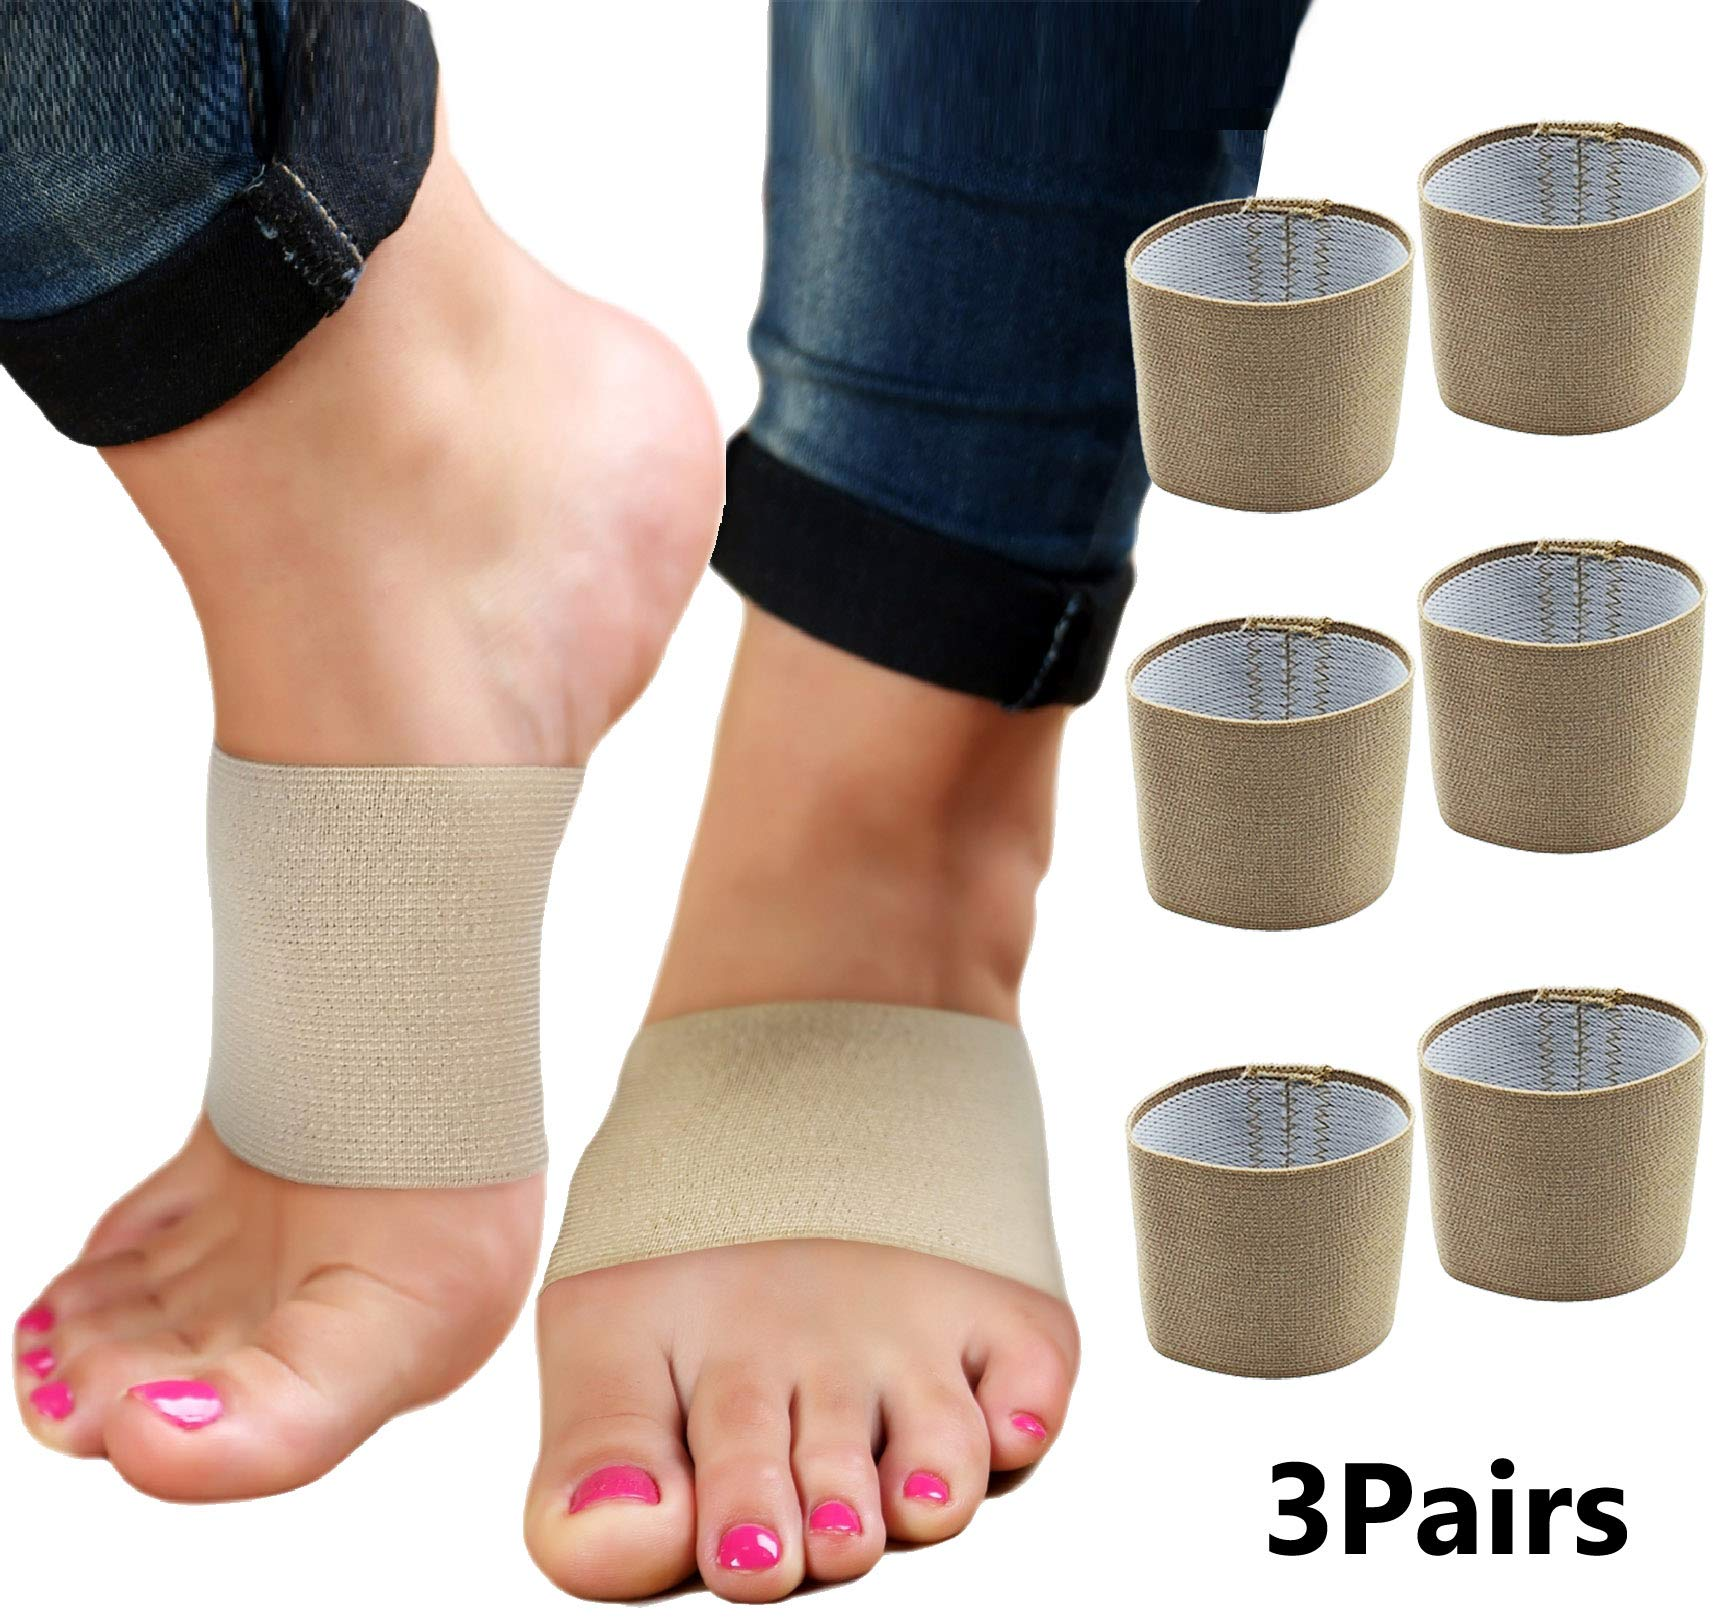 Plantar Fasciitis Brace Arch Supports - Arch Brace for Foot & Heel Pain Relief. Compression Sleeves Help Sore Heels, Bone Spurs, Flat Feet or High Arches Copper Infused Bands Plantar Fasciitis (Beige) by ARMSTRONG AMERIKA